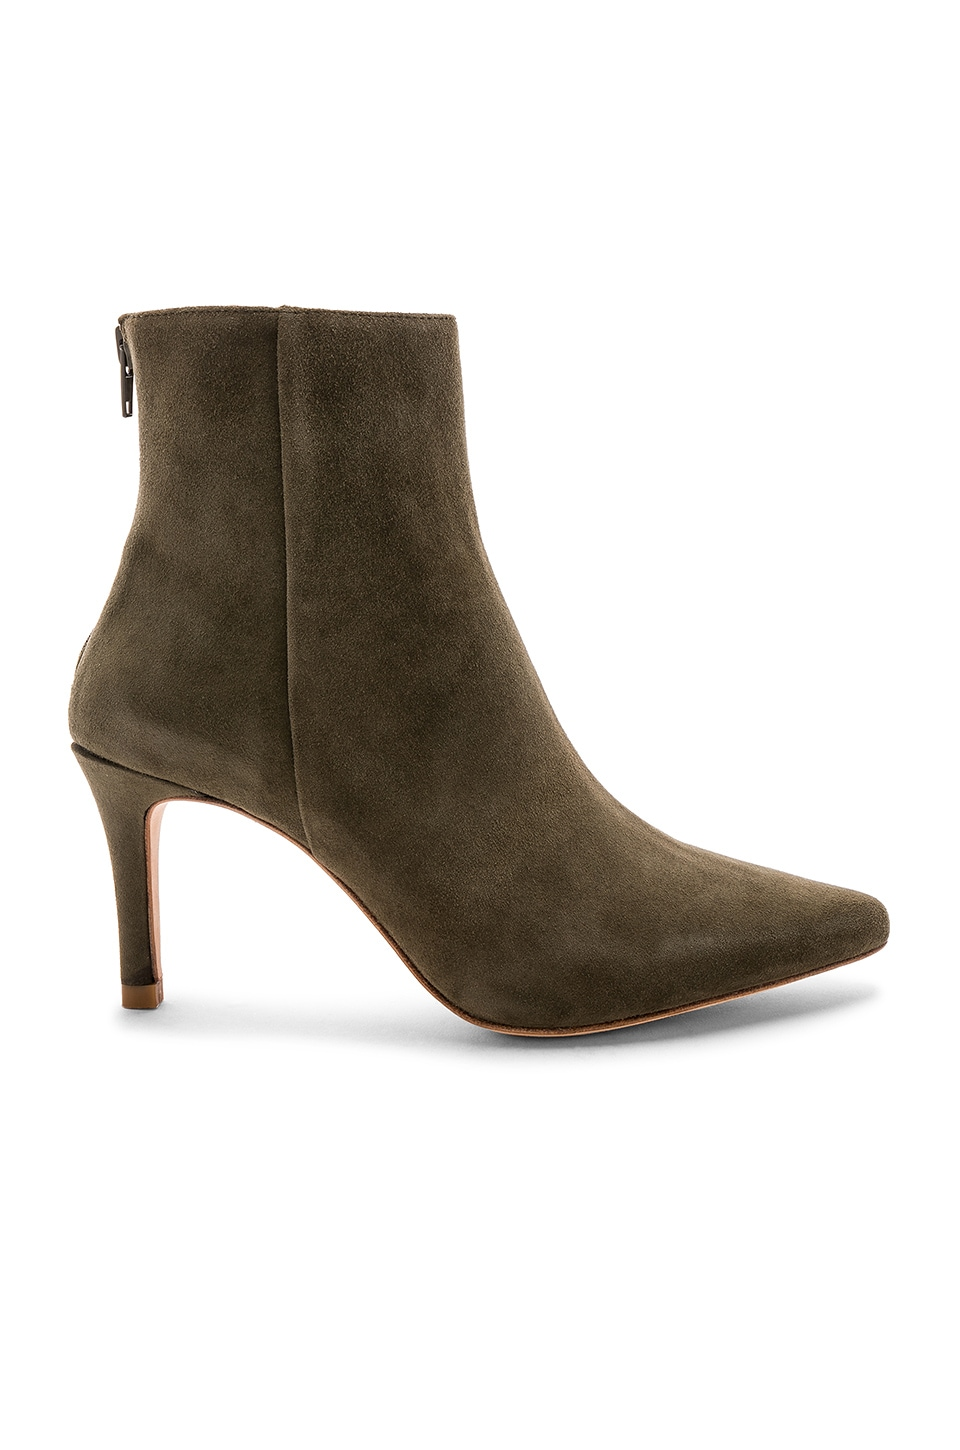 x House Of Harlow 1960 Lily Bootie